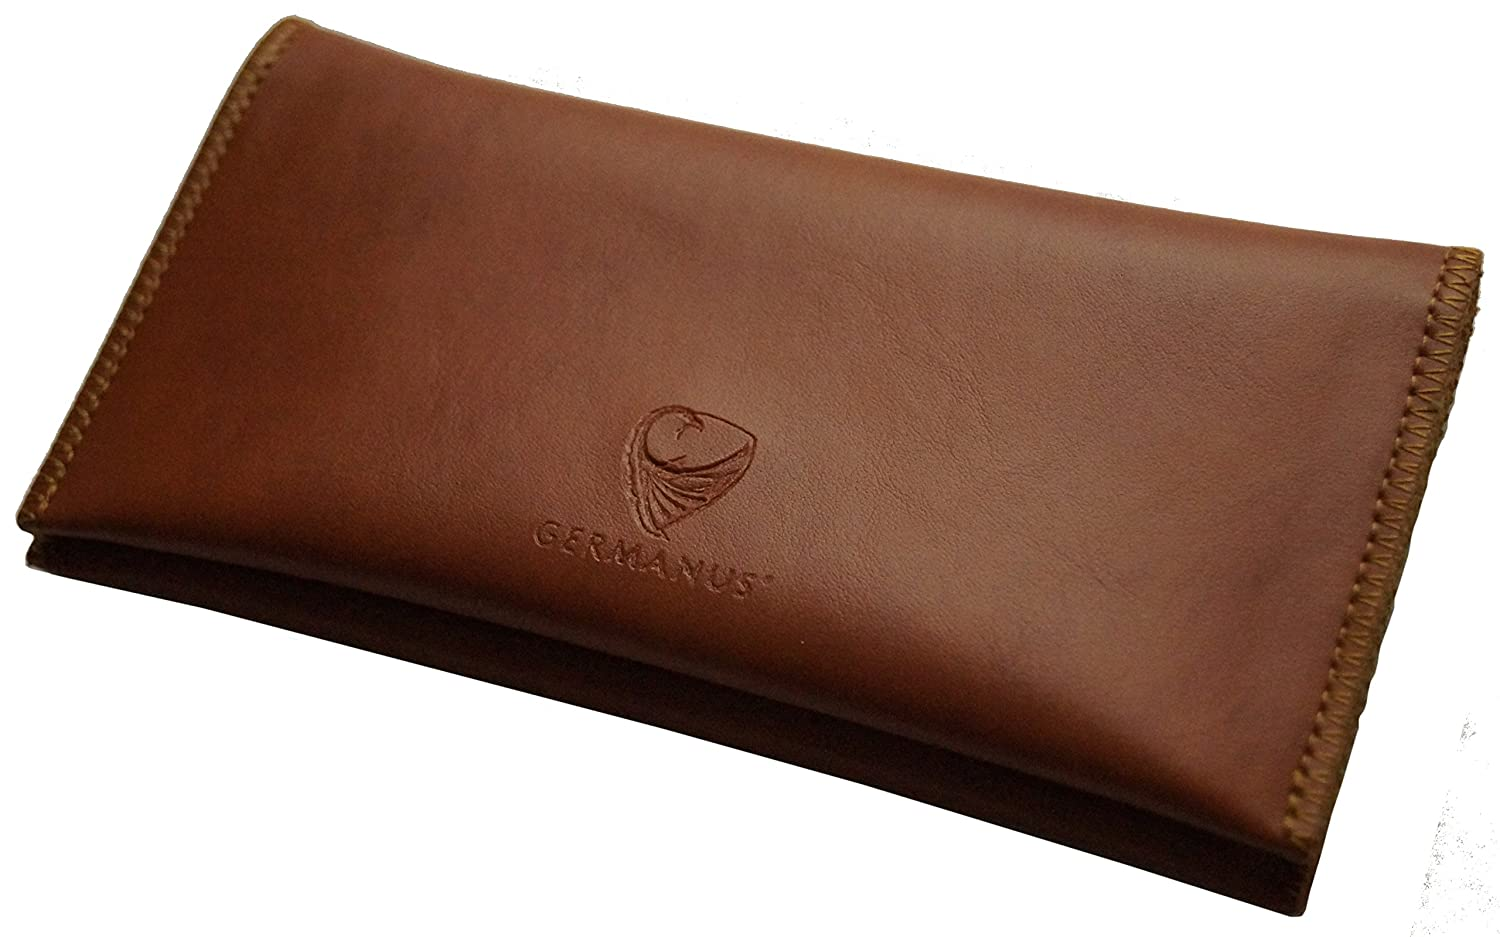 GERMANUS Tobacco Pouch from Artleather, Leather free - Made in EU - Fuscus 3986